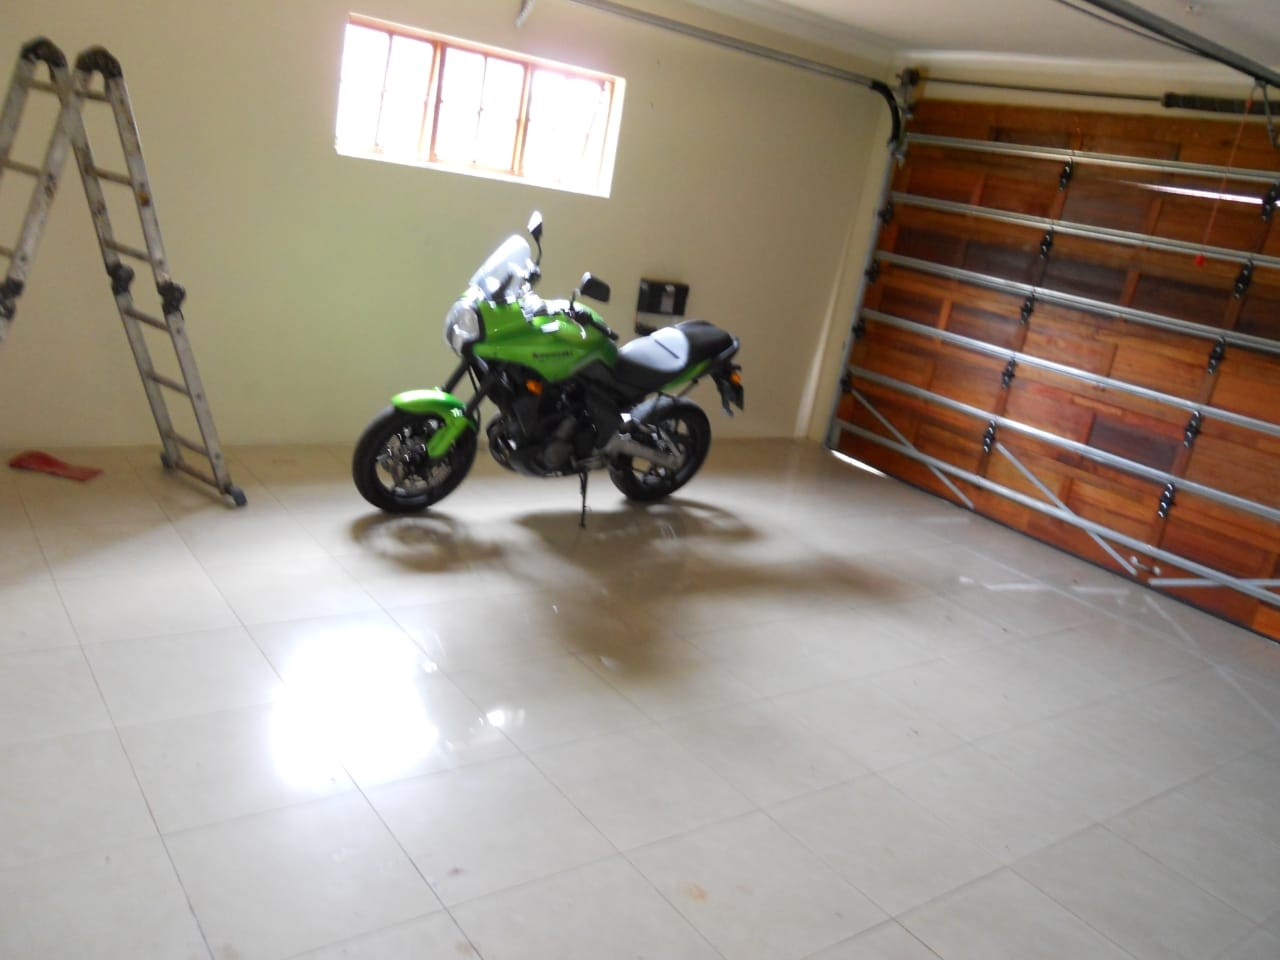 Double garage with tiled floors and wooden electronic doors